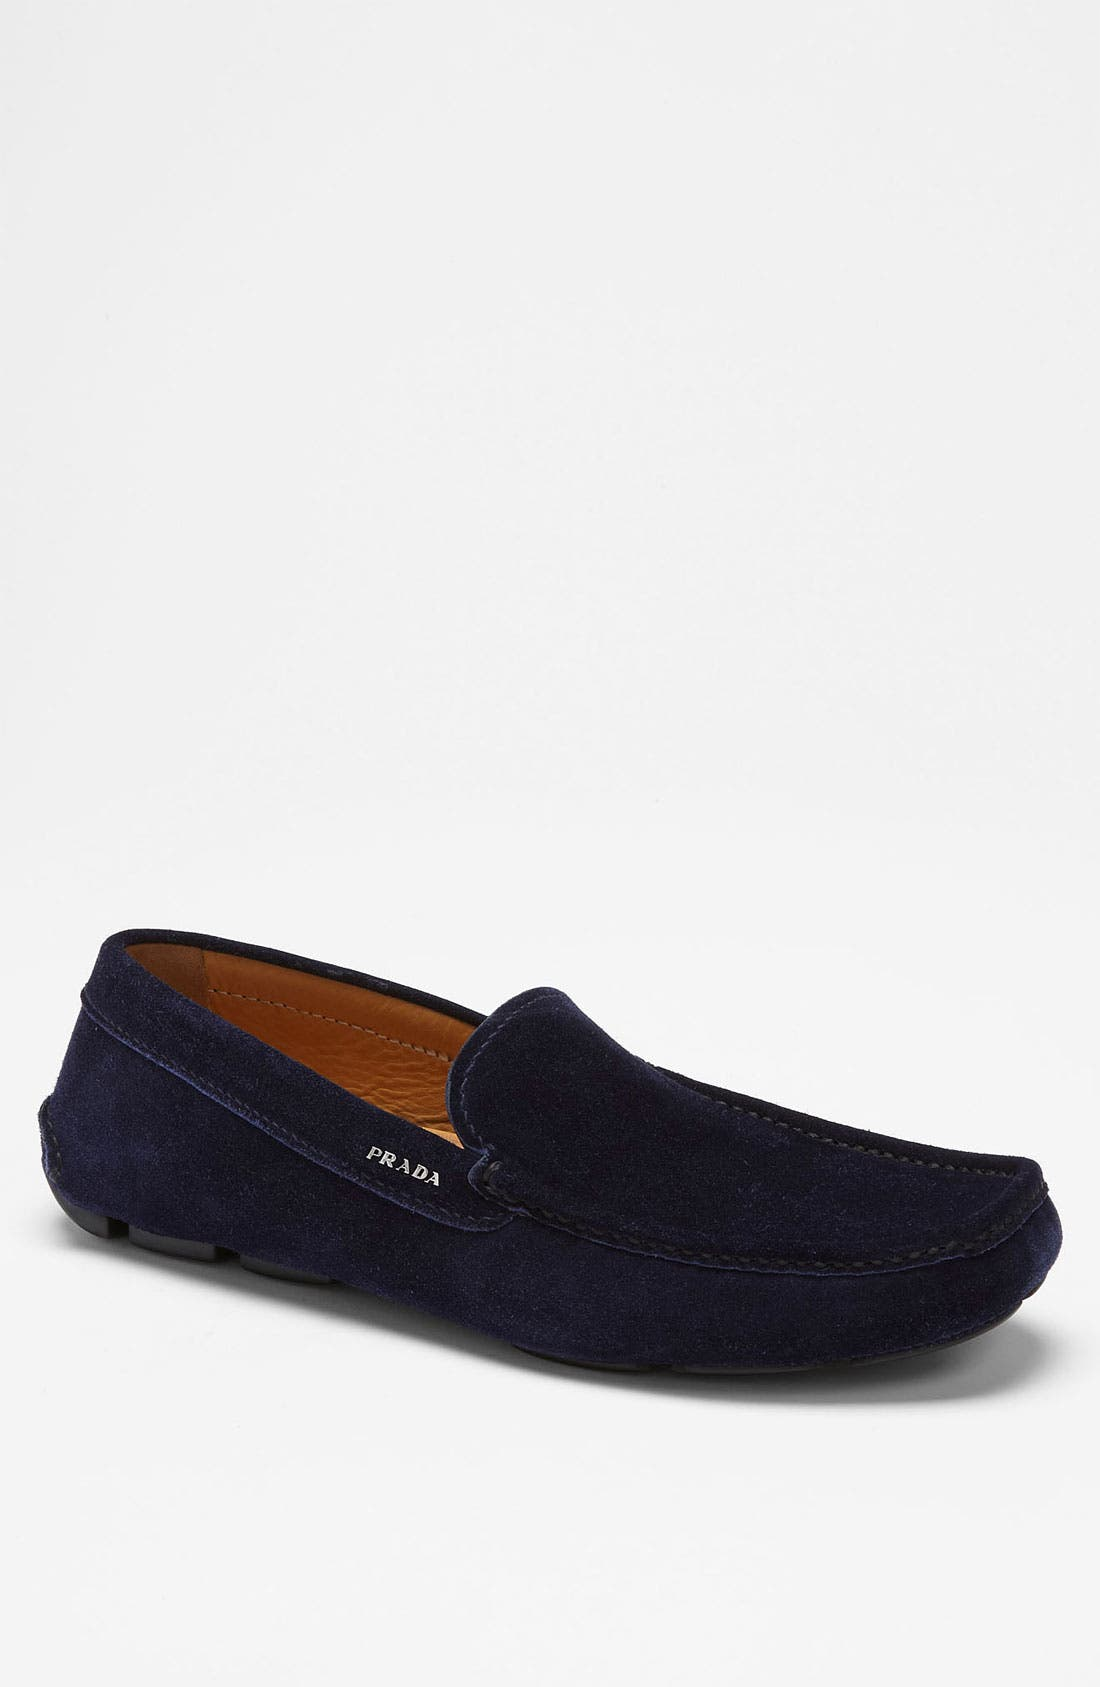 Main Image - Prada Suede Driving Shoe